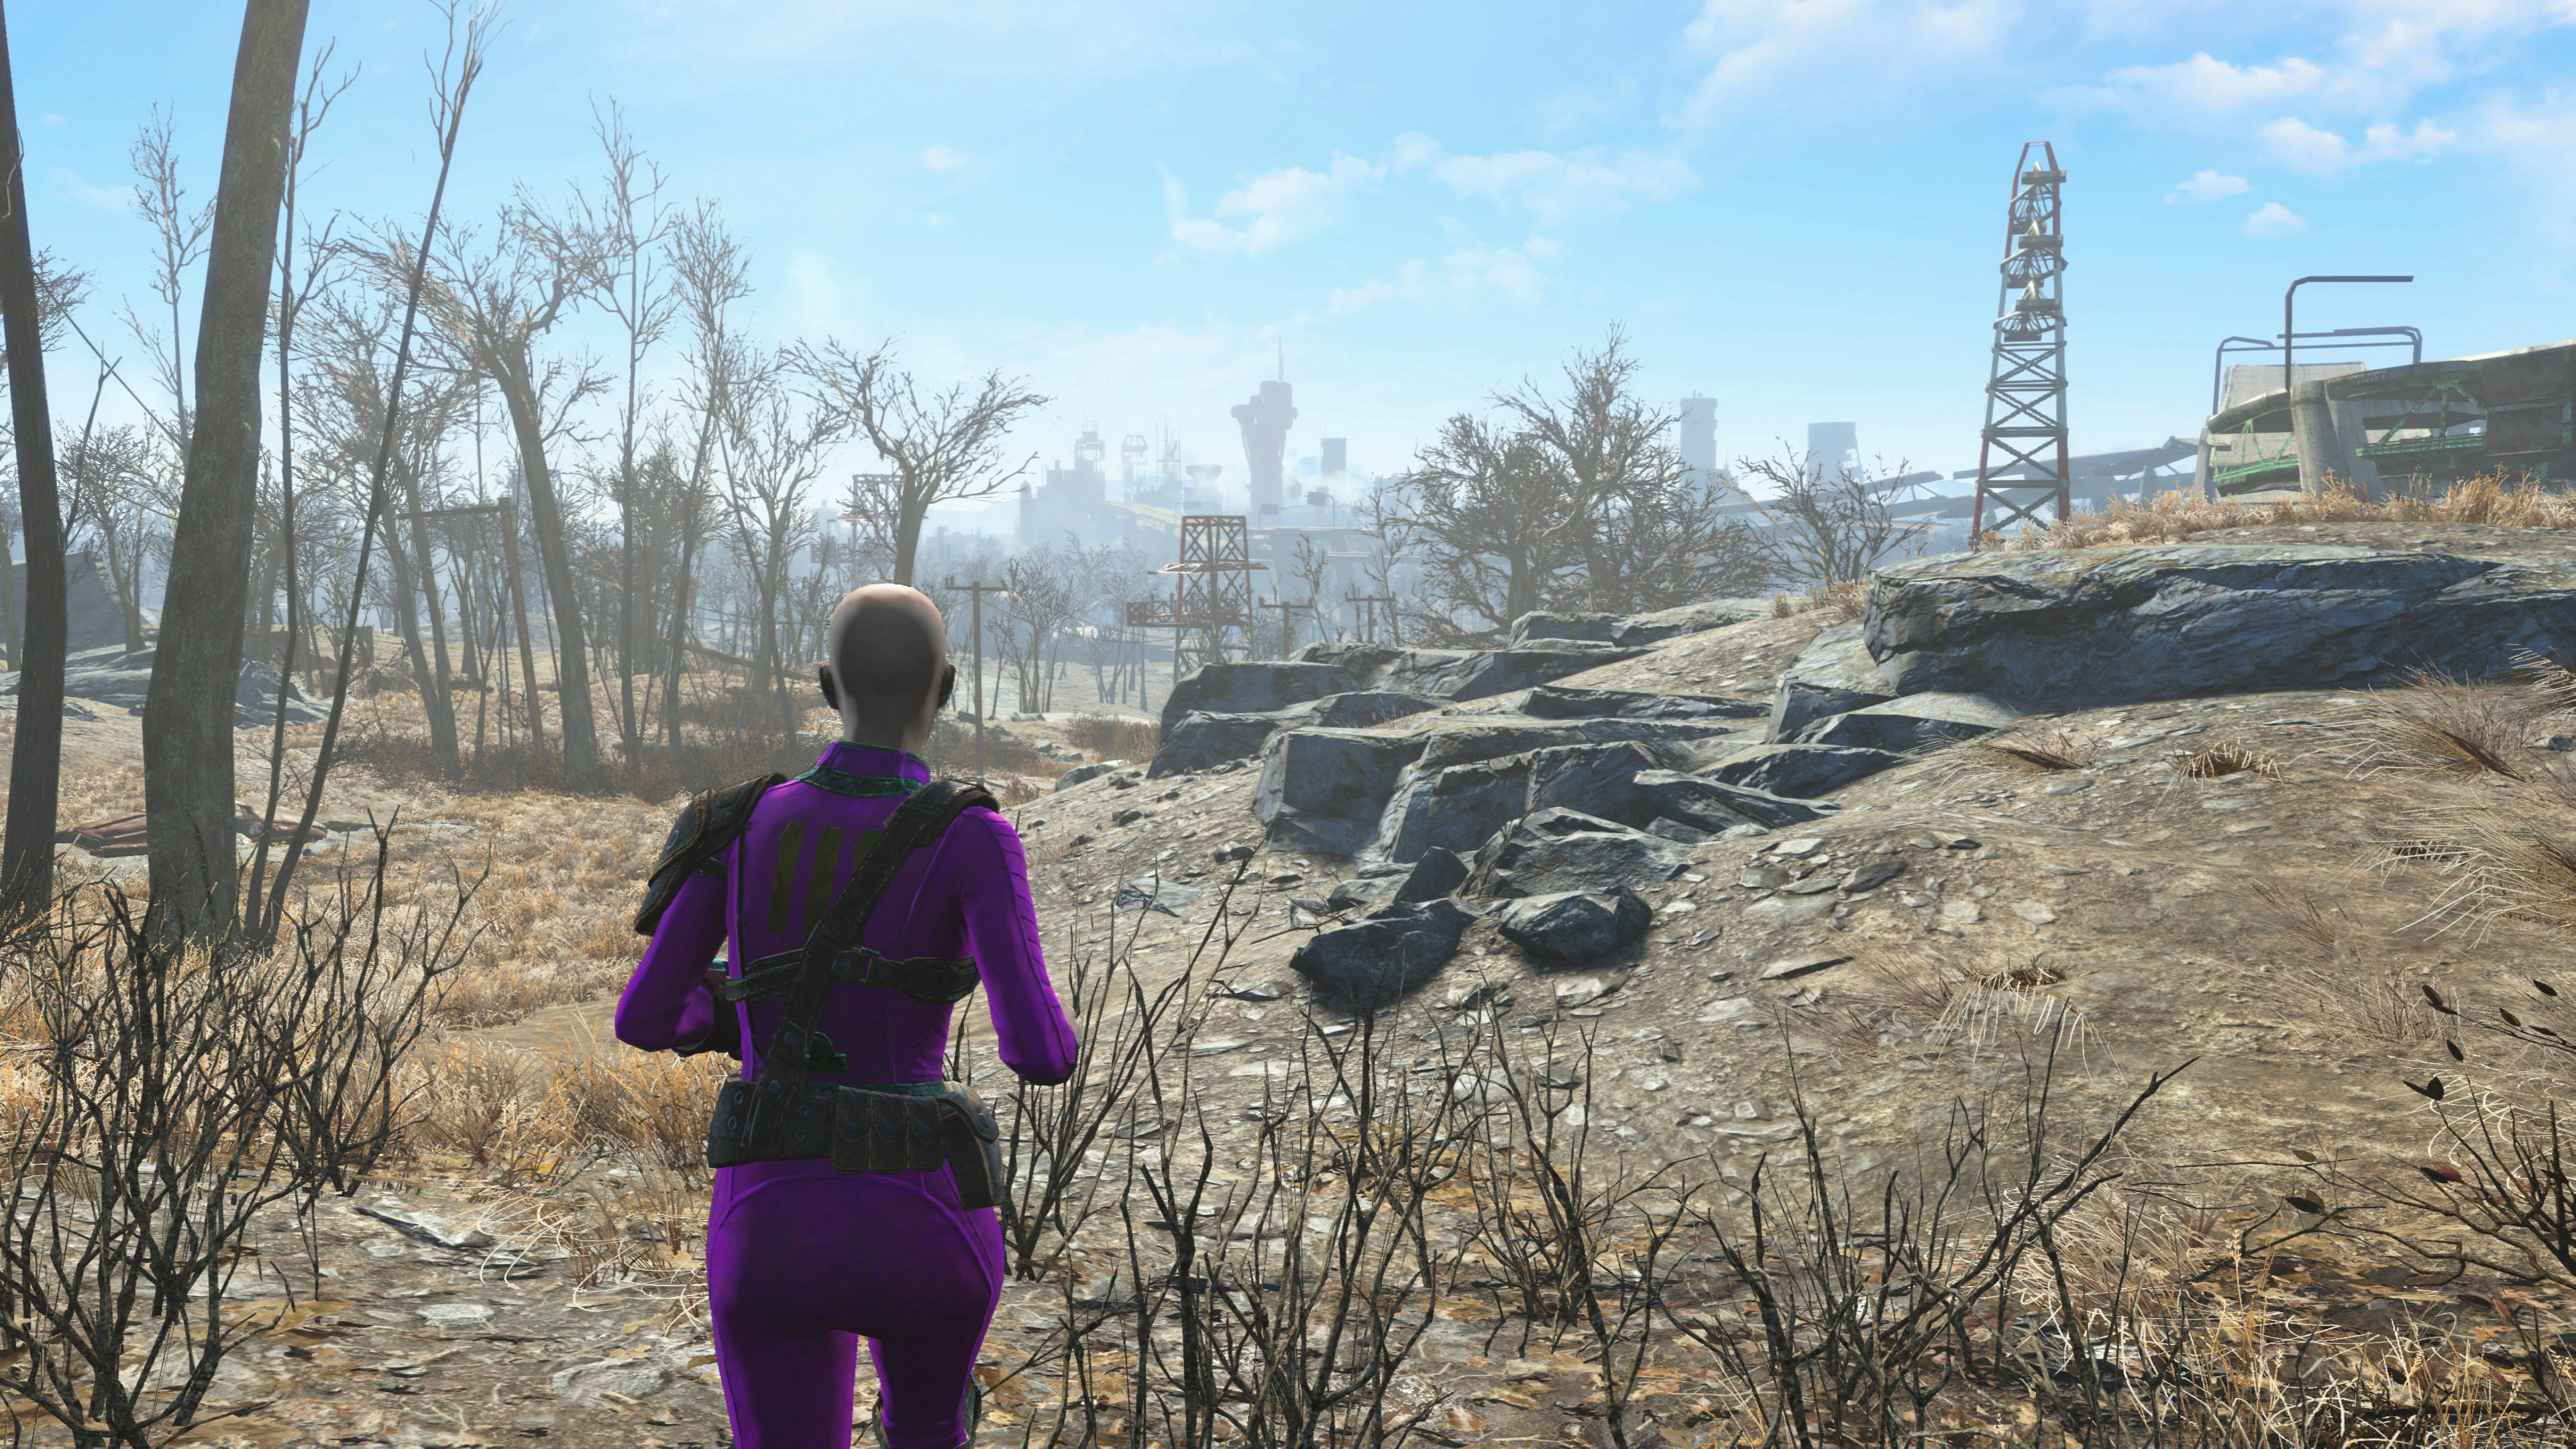 Susan's Fallout 4 character running in a barren wasteland.